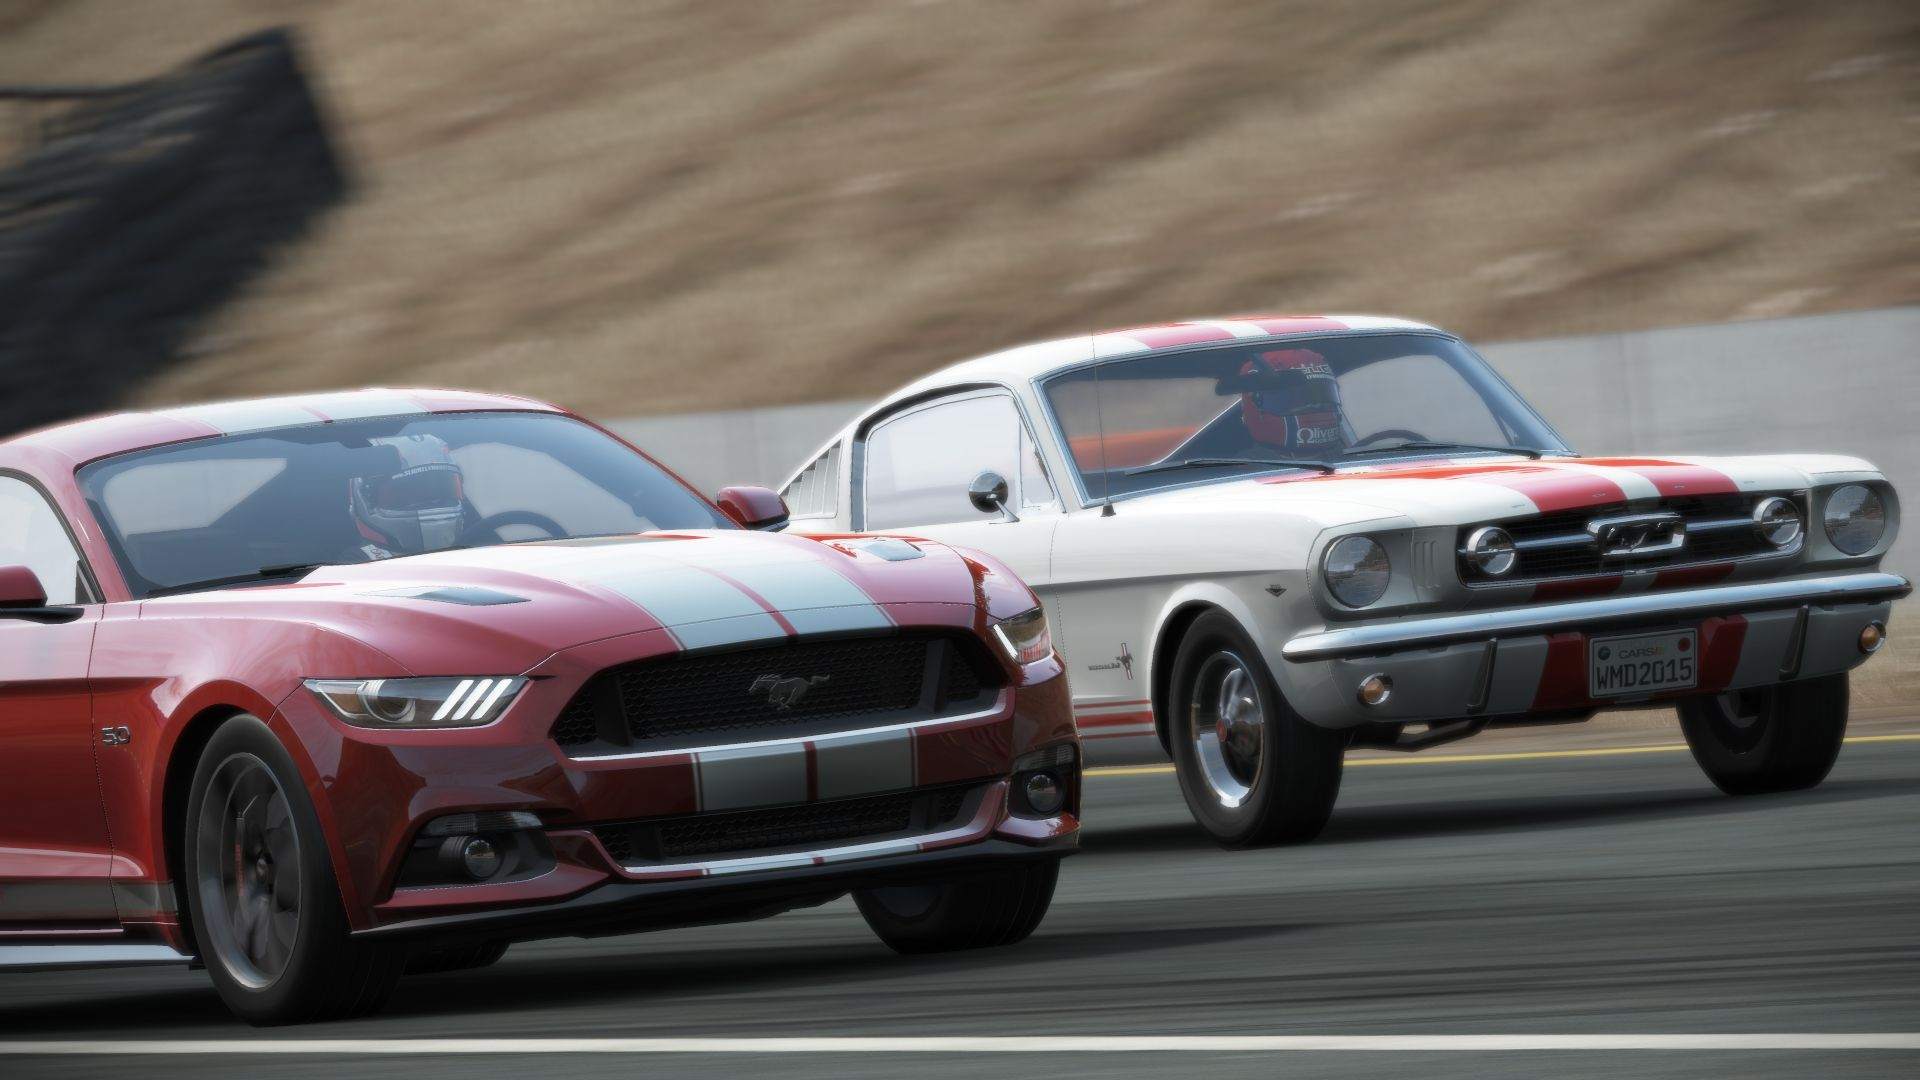 Latest Project Cars on Demand DLC covers both the old and the new ...